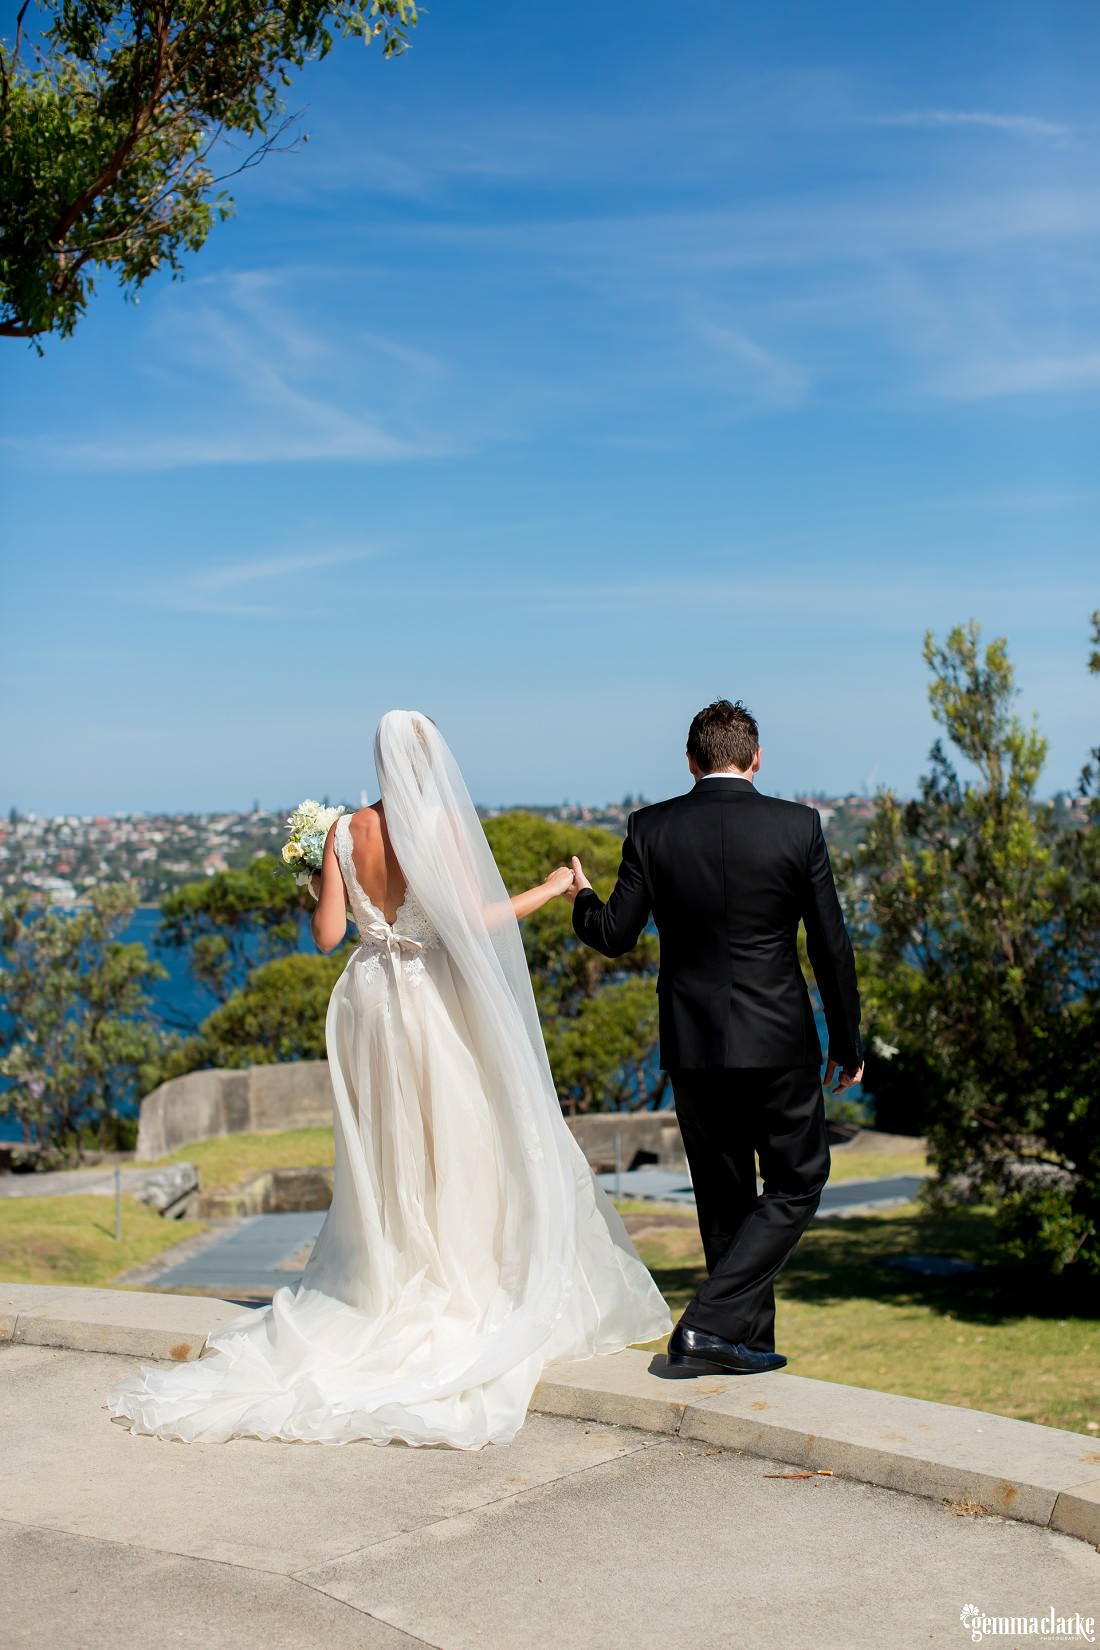 A bride and groom holding hands and walking down steps